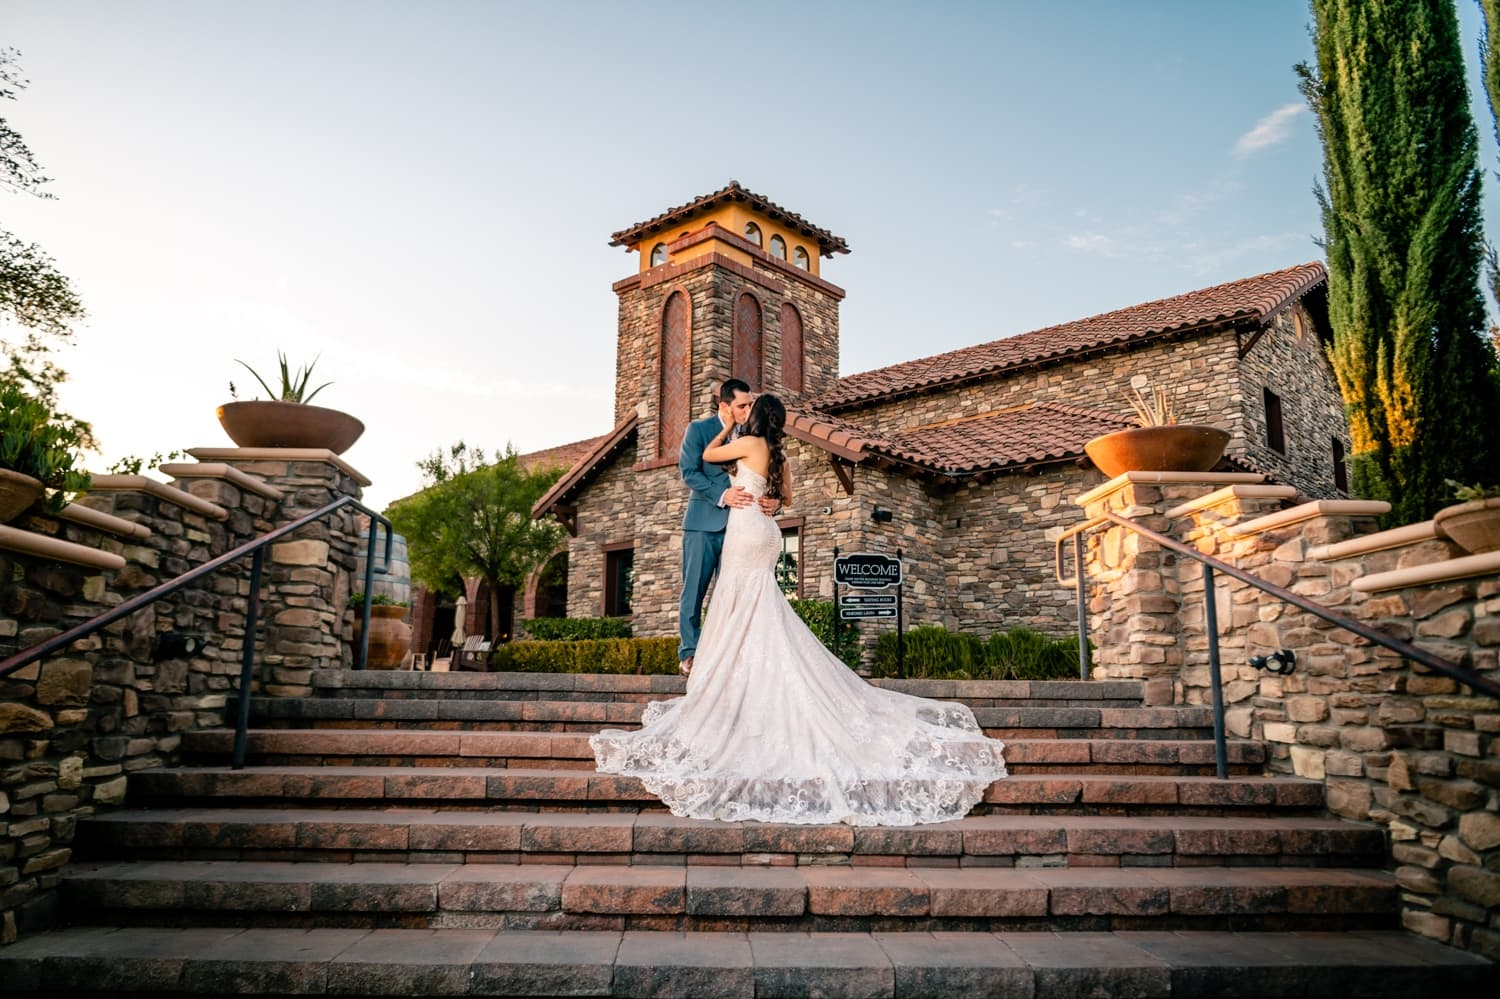 Bride and groom on the steps at Lorimar Winery in Temecula.